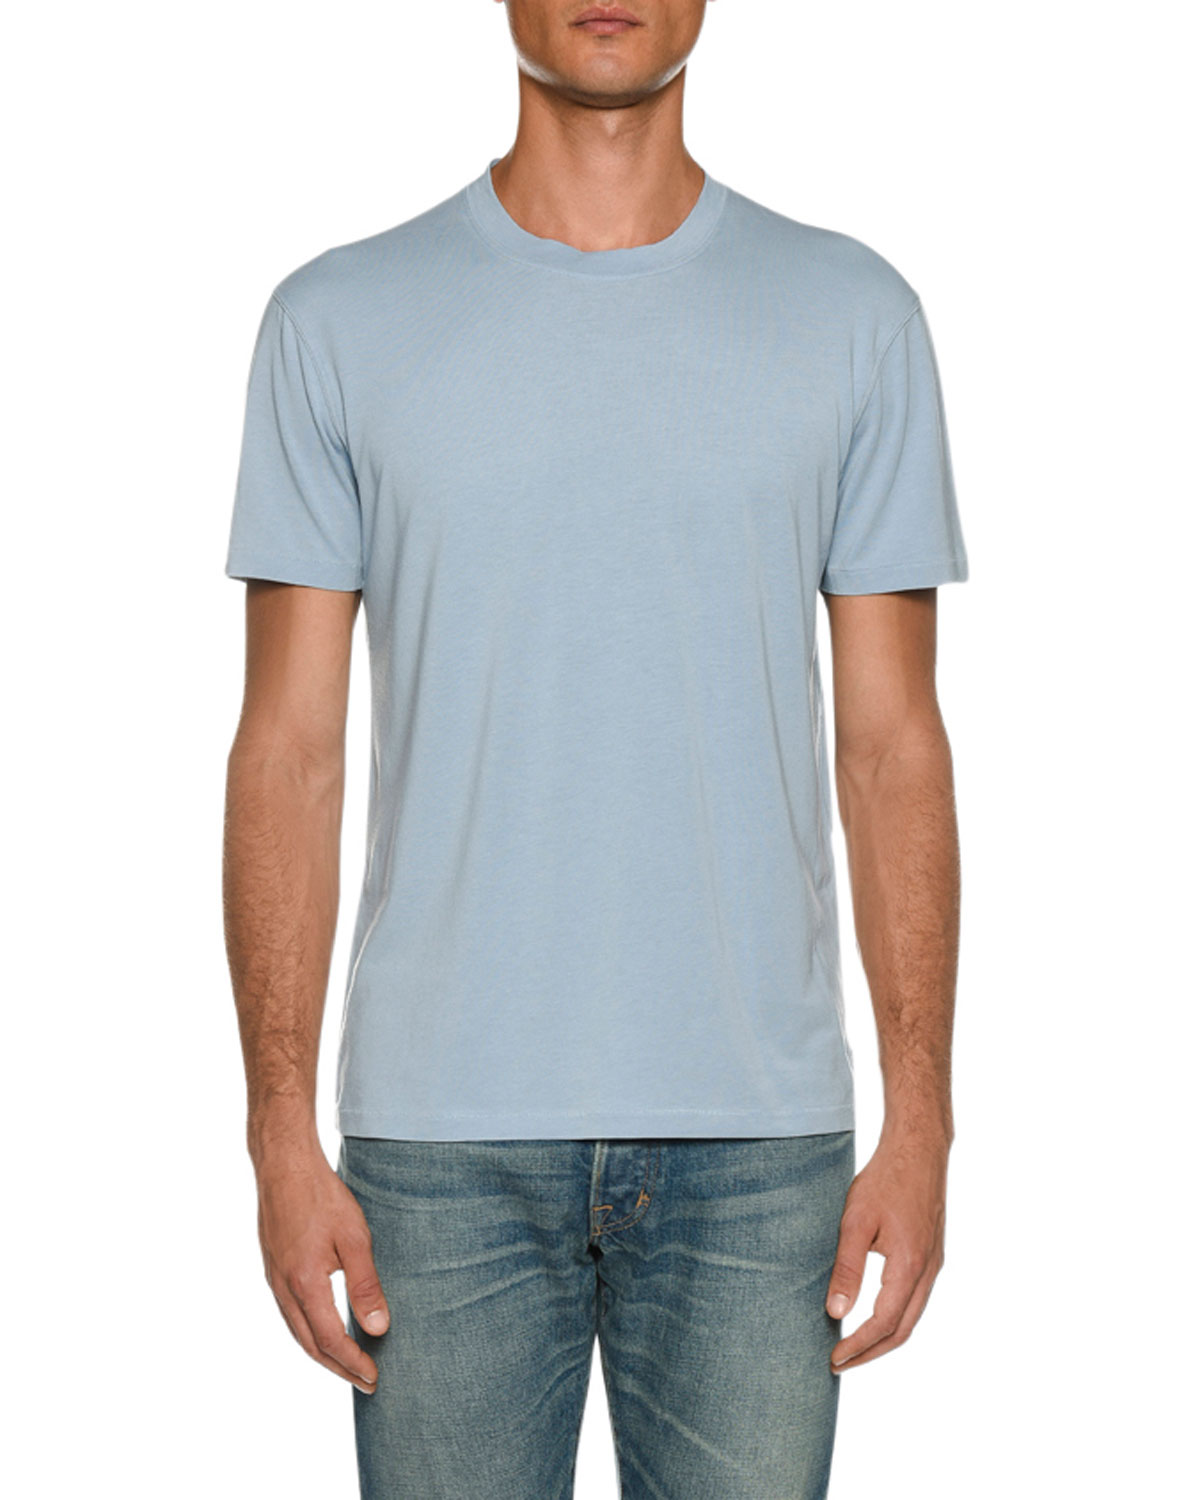 TOM FORD Men's Short-Sleeve Solid T-Shirt, Blue